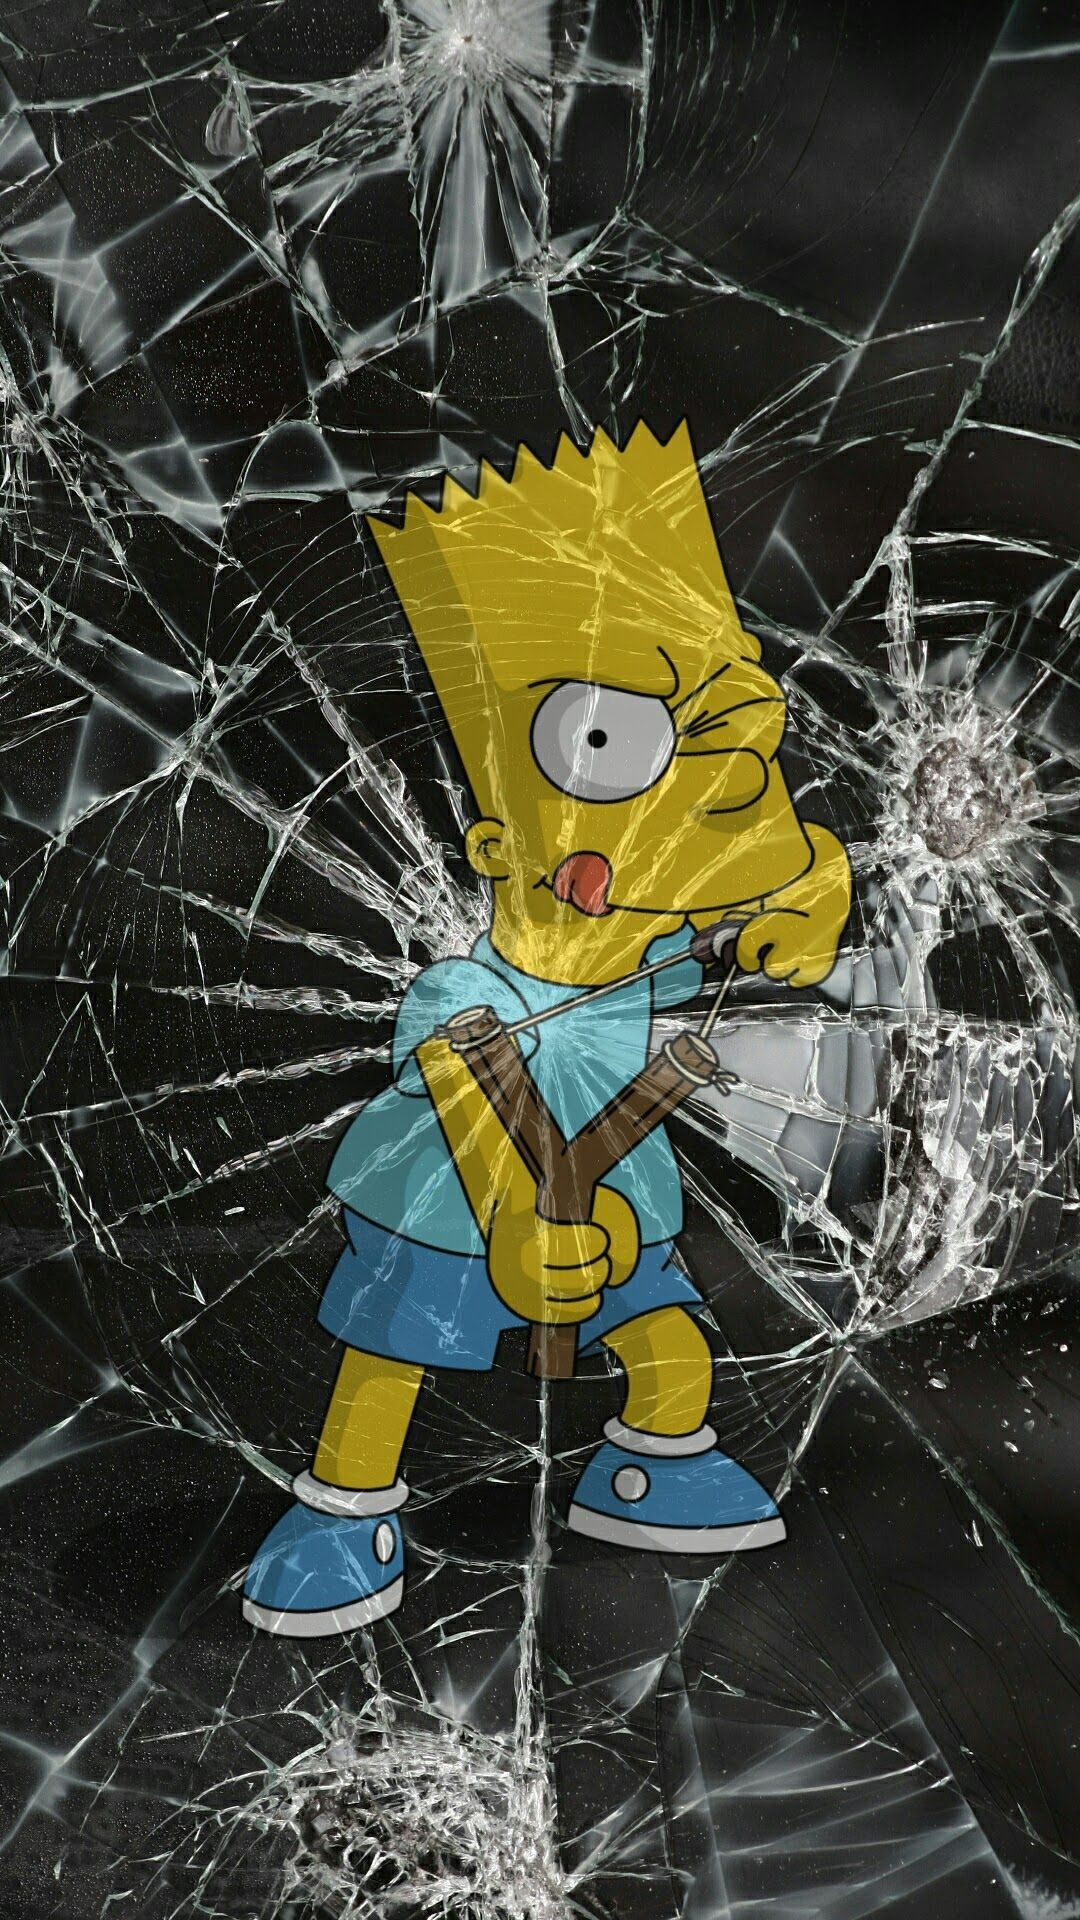 Bart Simpsons Haha this is my wallpaper I got it from Zedge no promo